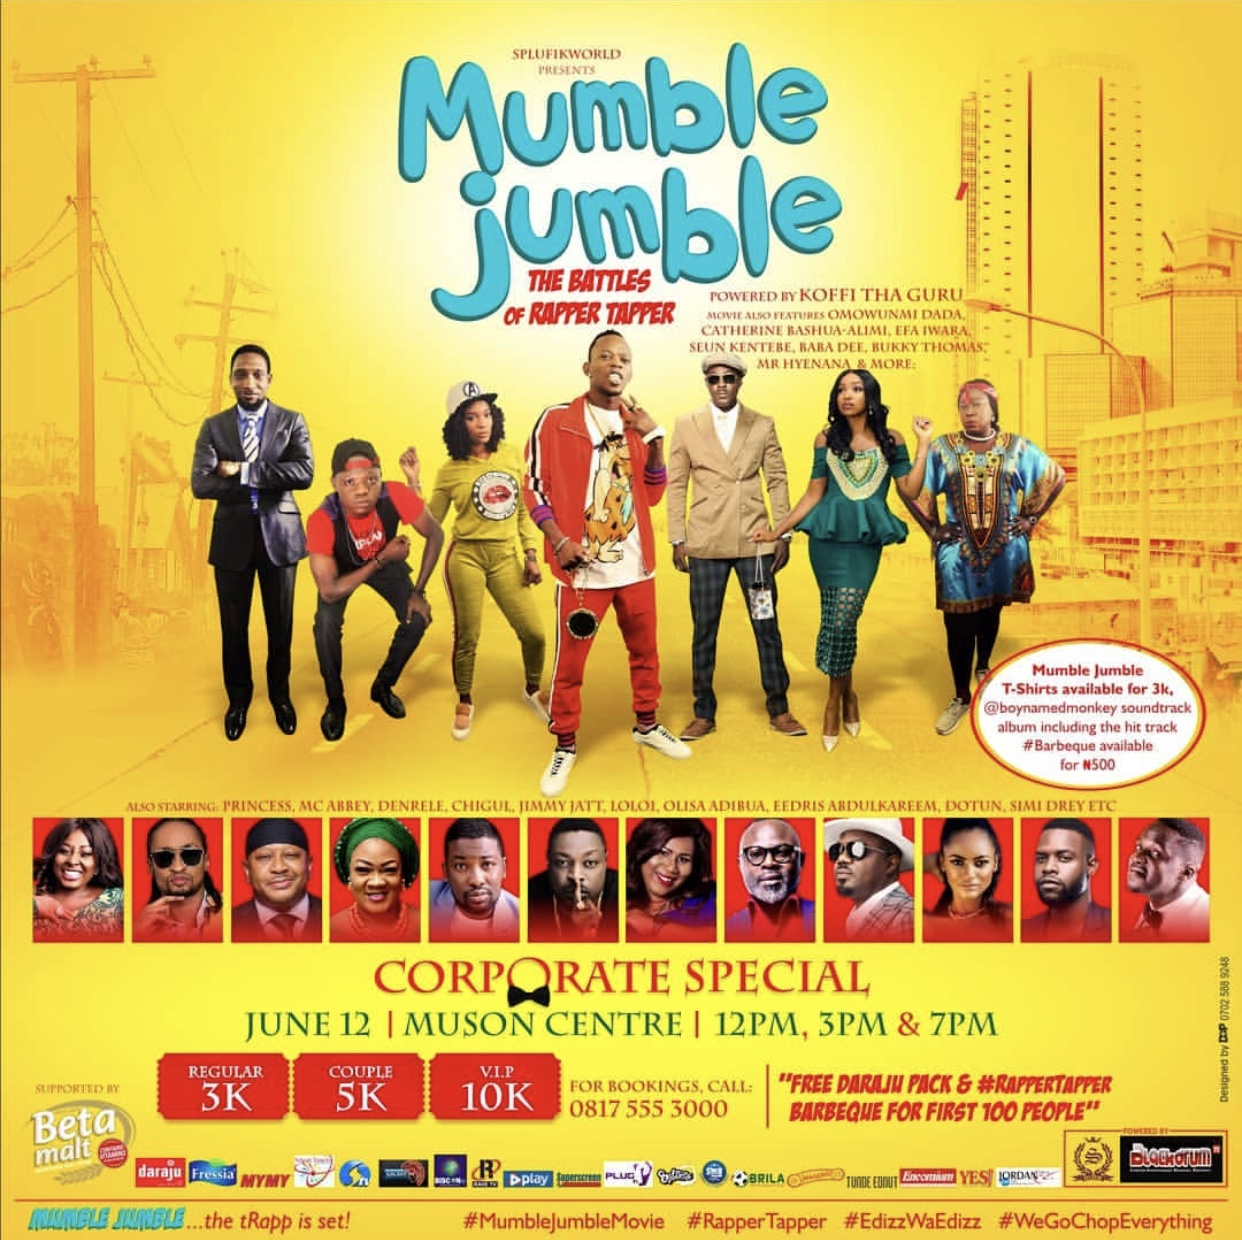 Comedian extraordinaire, Koffi The Guru's Mumble Jumble for premiere